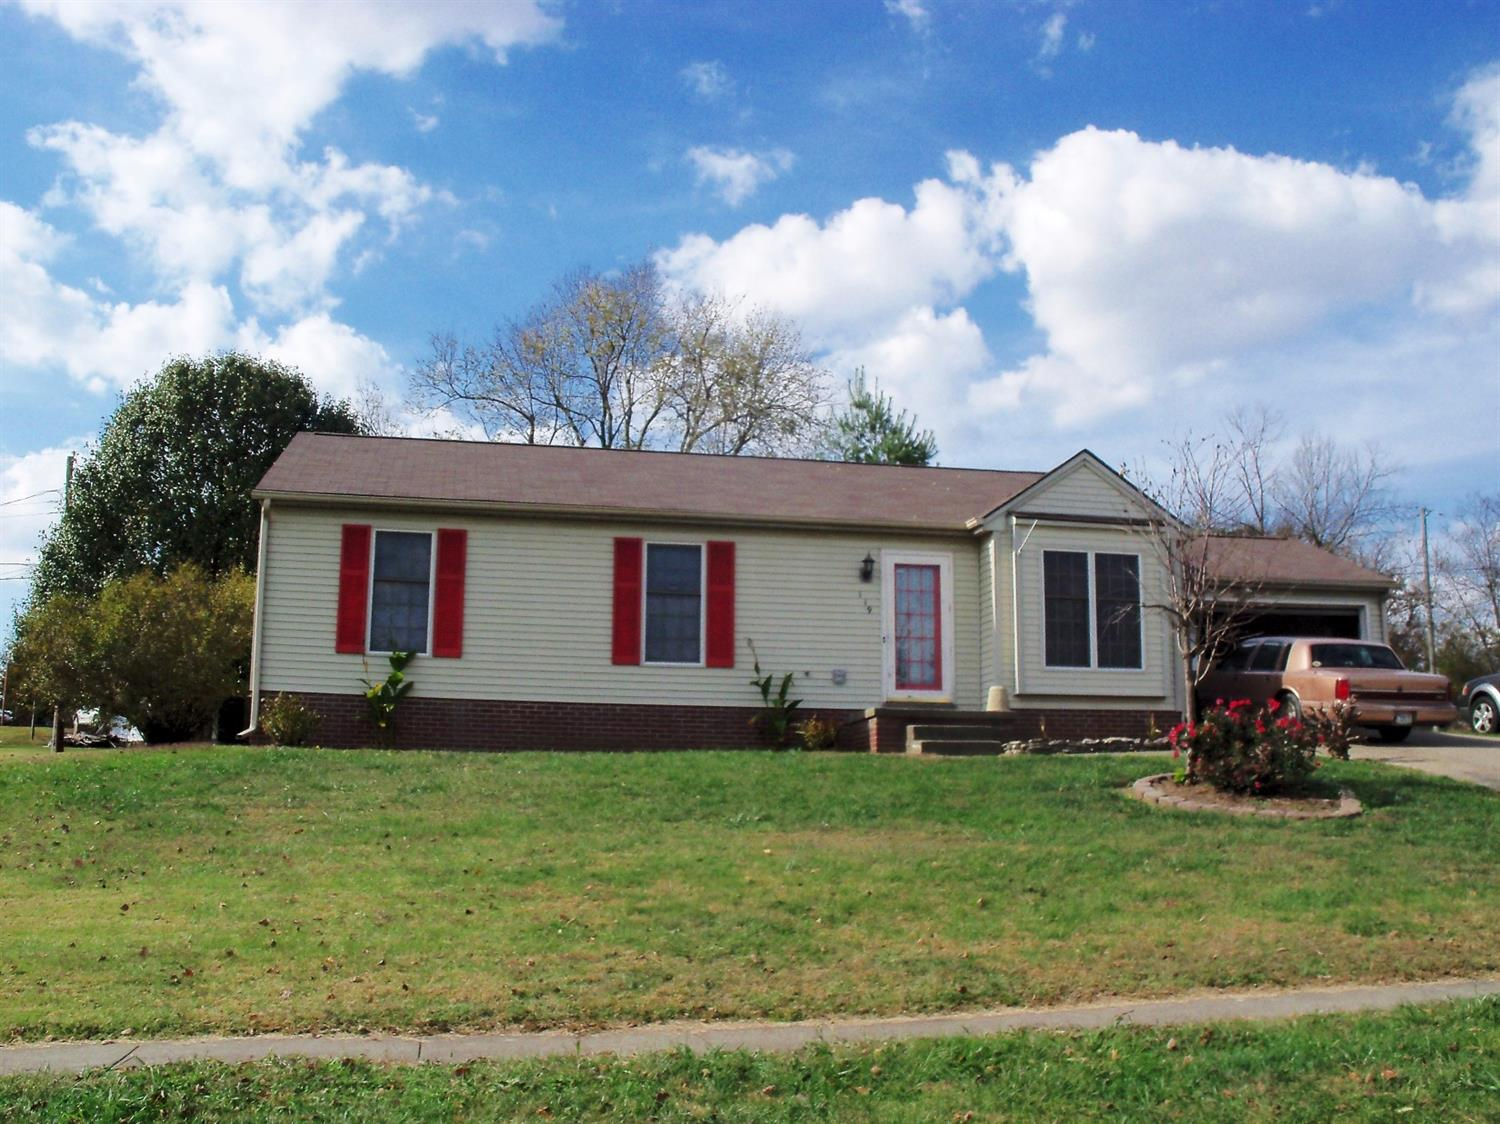 Home For Sale at 320 W Lexington Ave, Danville, KY 40422